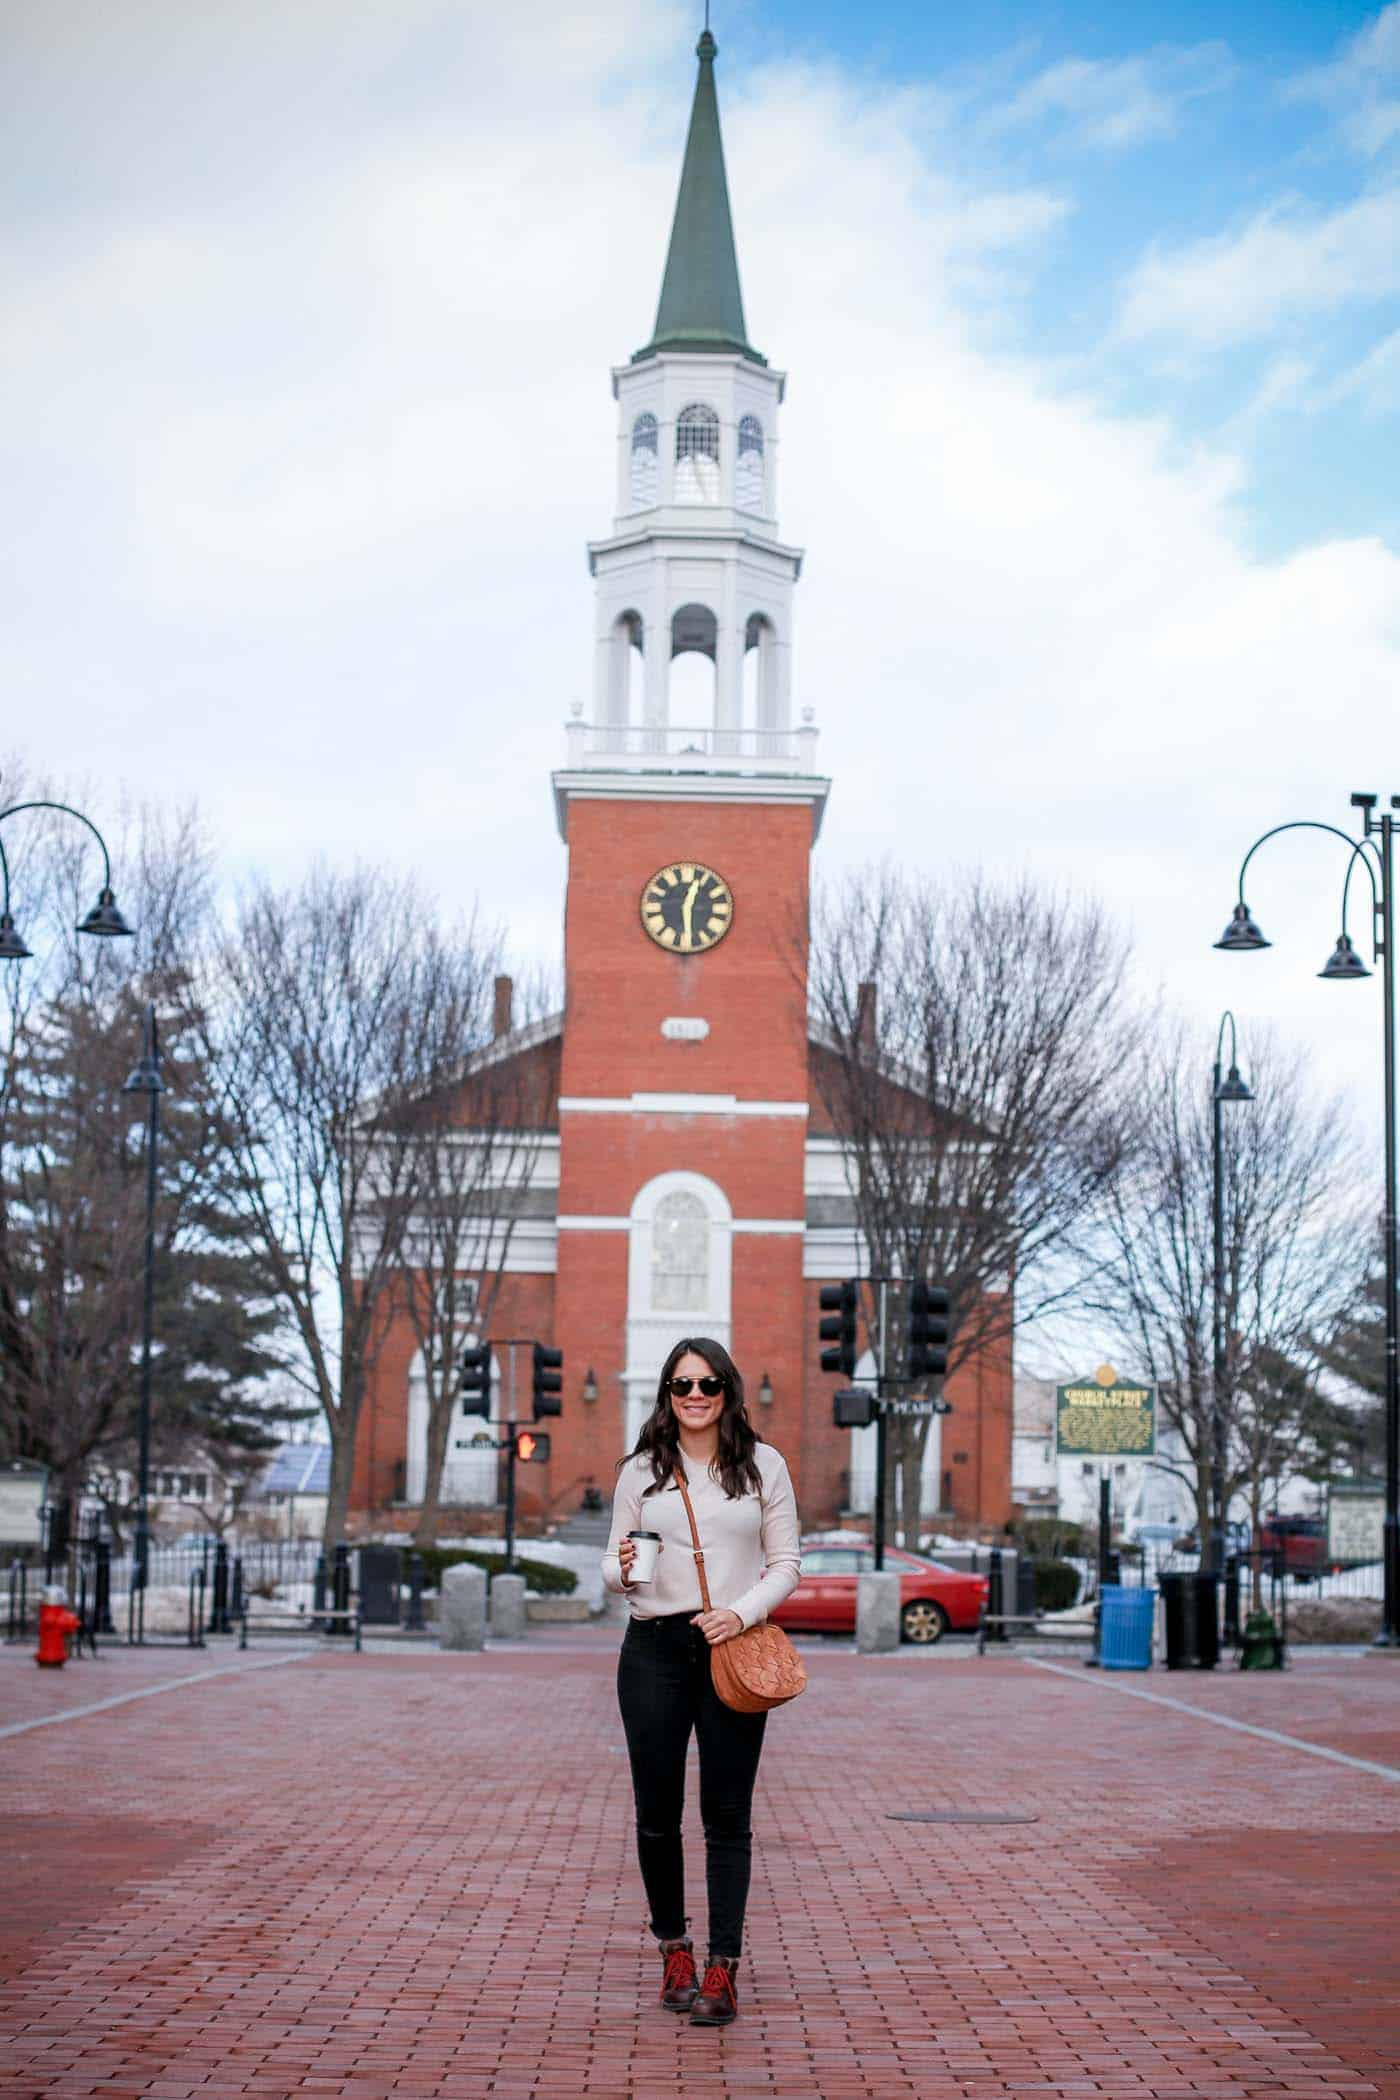 Things To Note When Traveling To Stowe Vermont